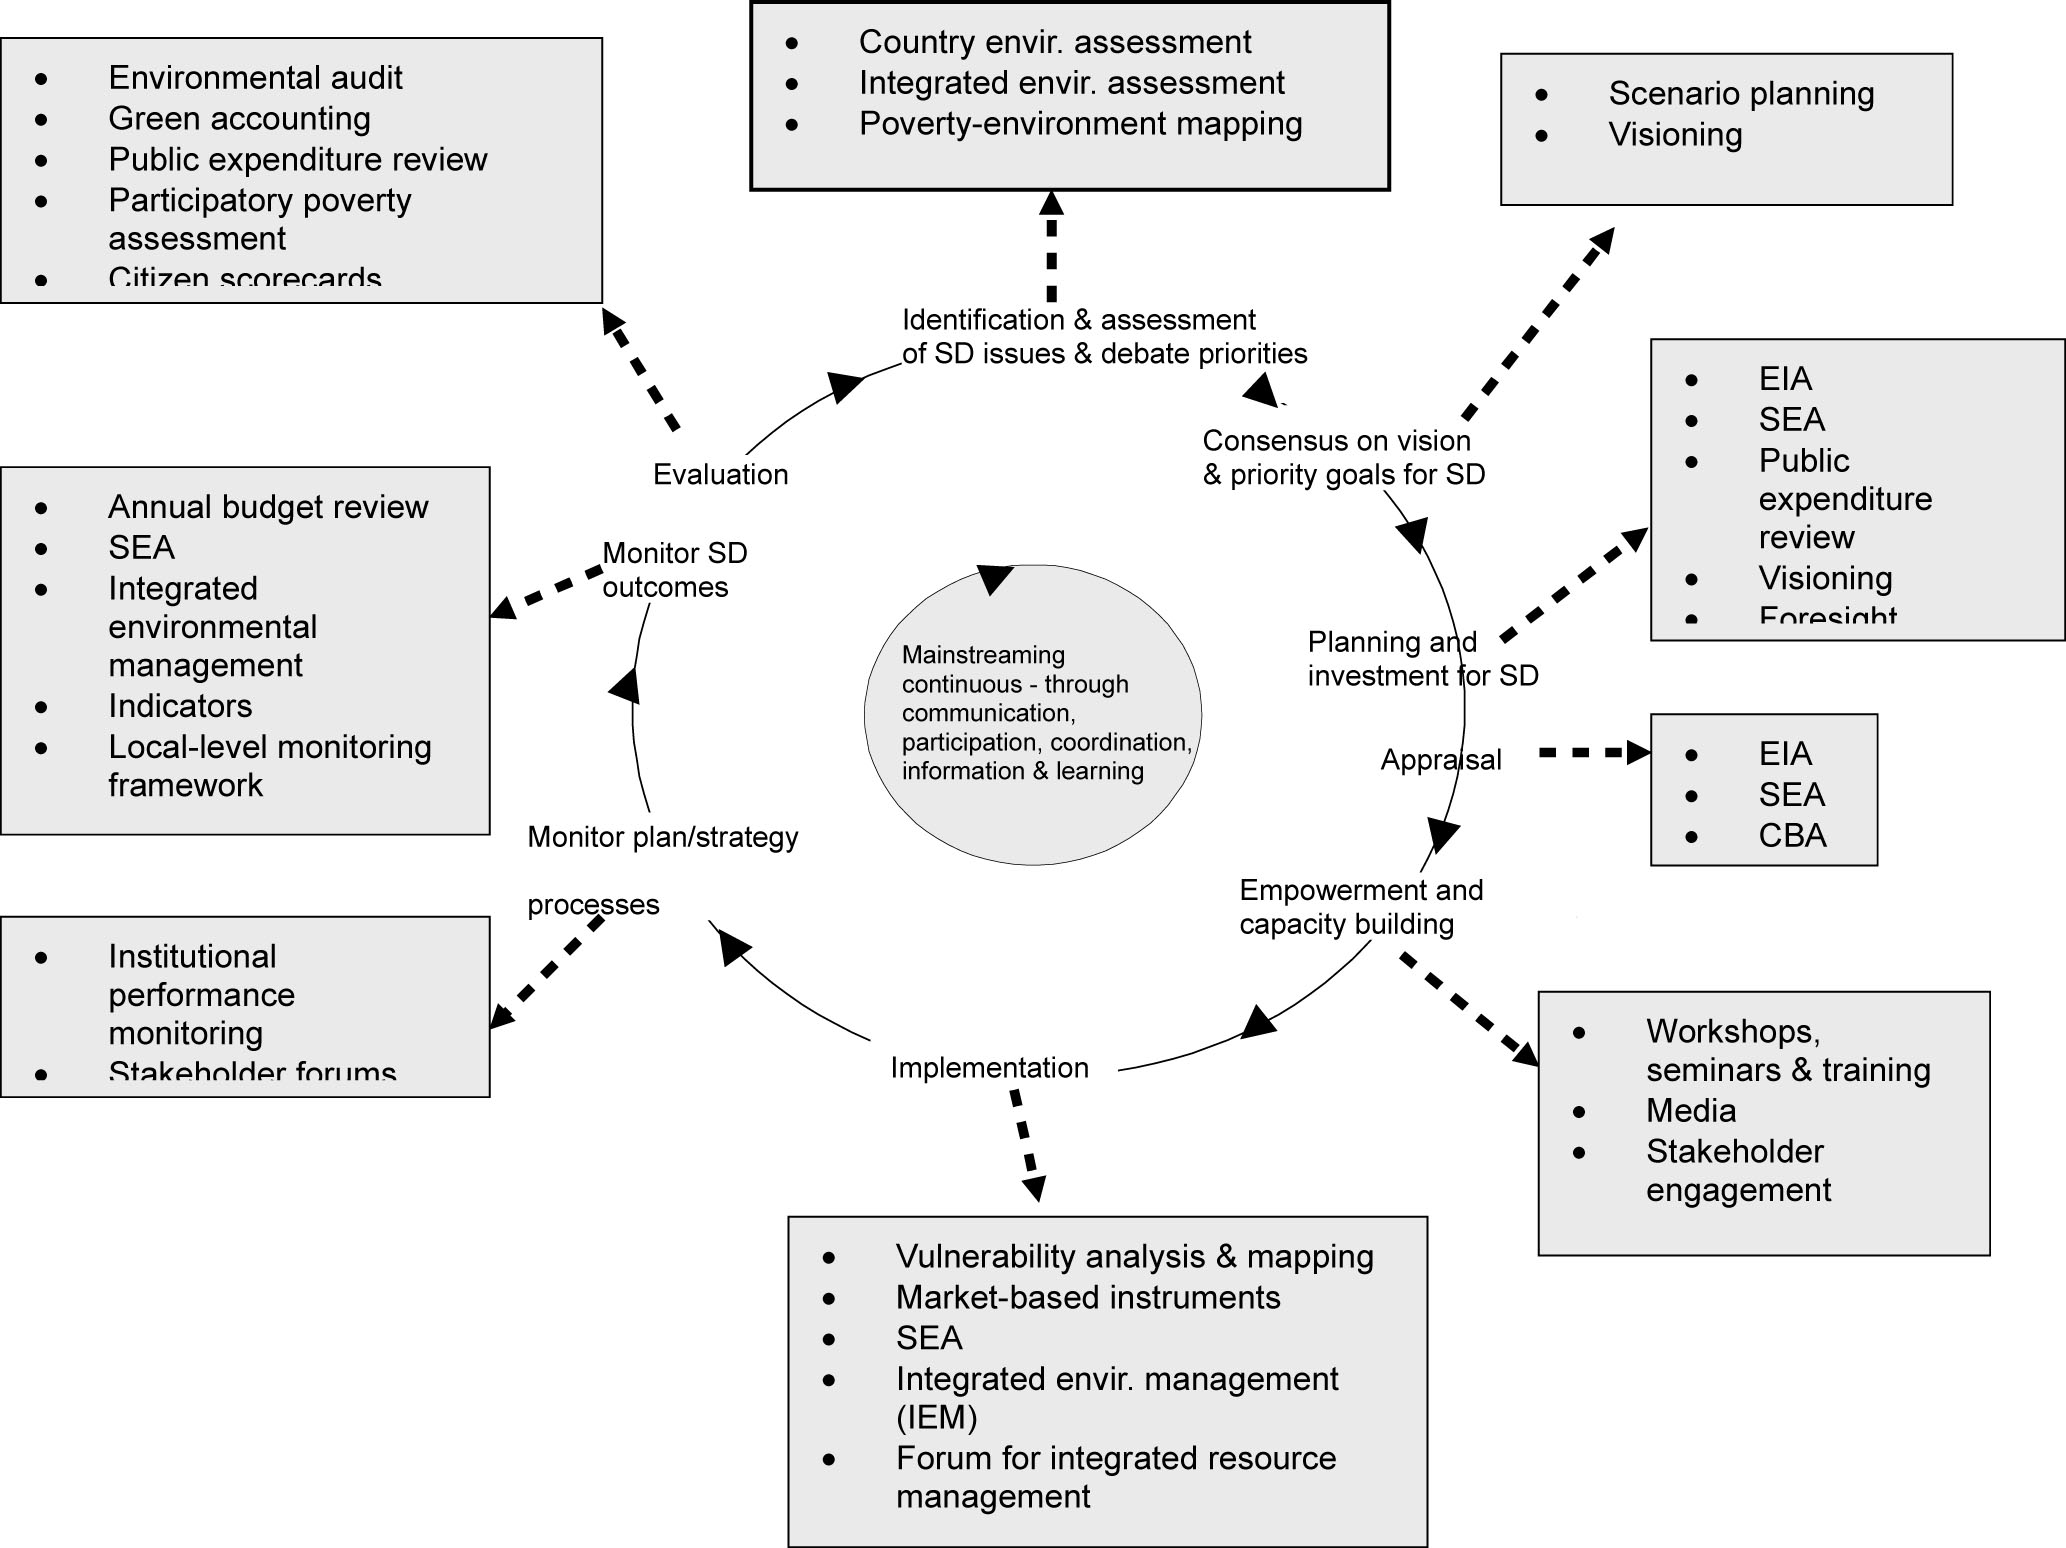 Linking mainstreaming to the continuous improvement approach to managing policy, strategy and planning processes